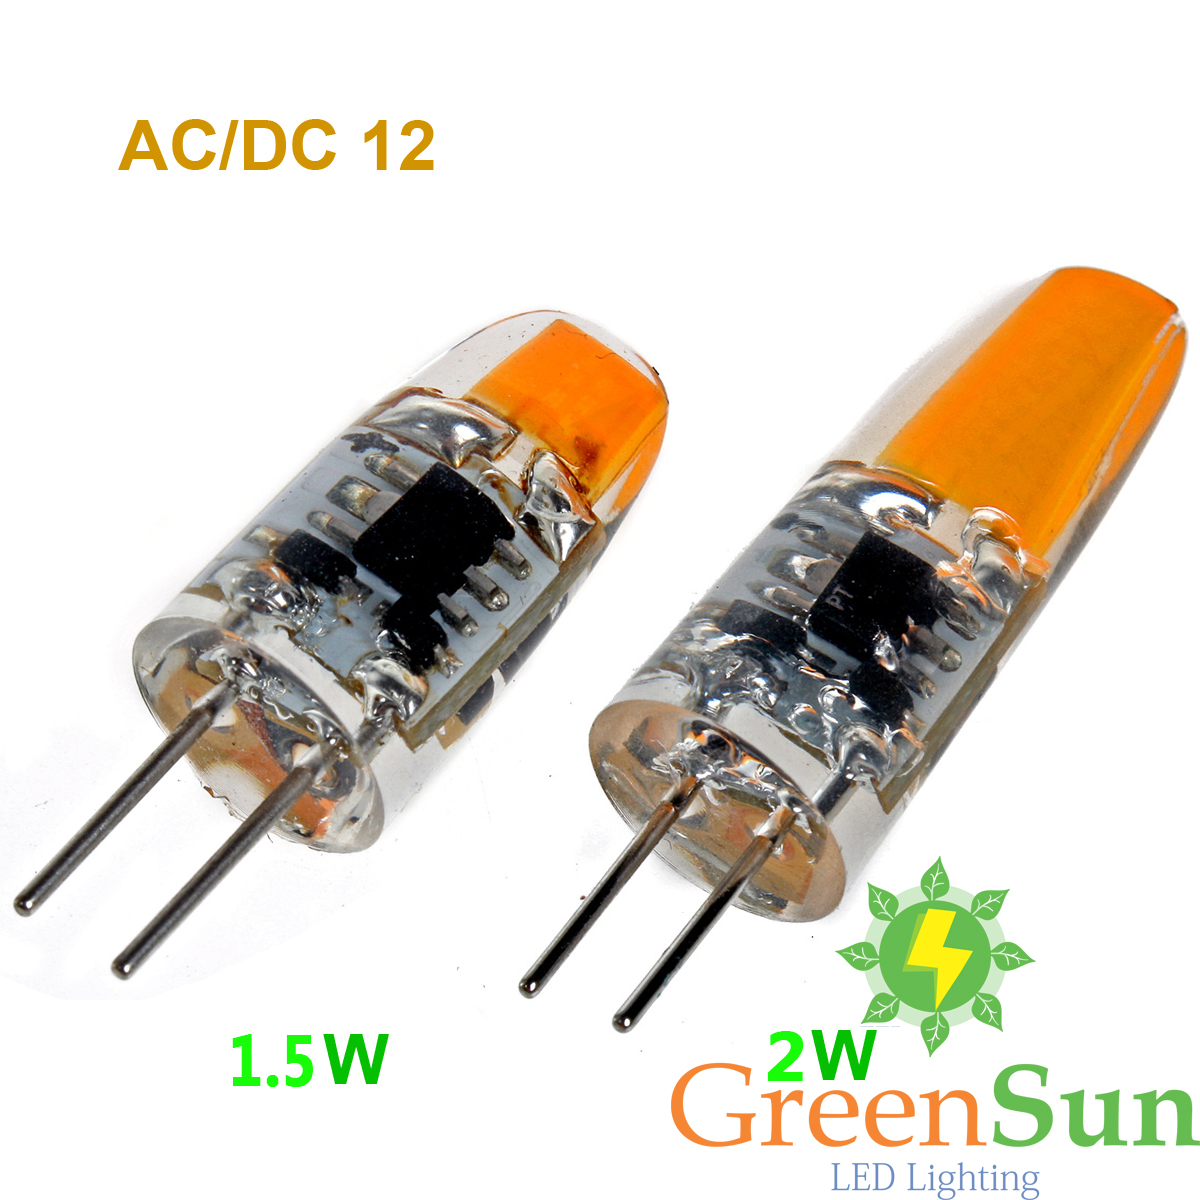 Us 1 49 16 Off G4 Cob Led Capsule Bulb Replace Halogen Decor Light Lamp Halogen Replacement Bulbs Dimmable Ac Dc 12v In Led Bulbs Tubes From